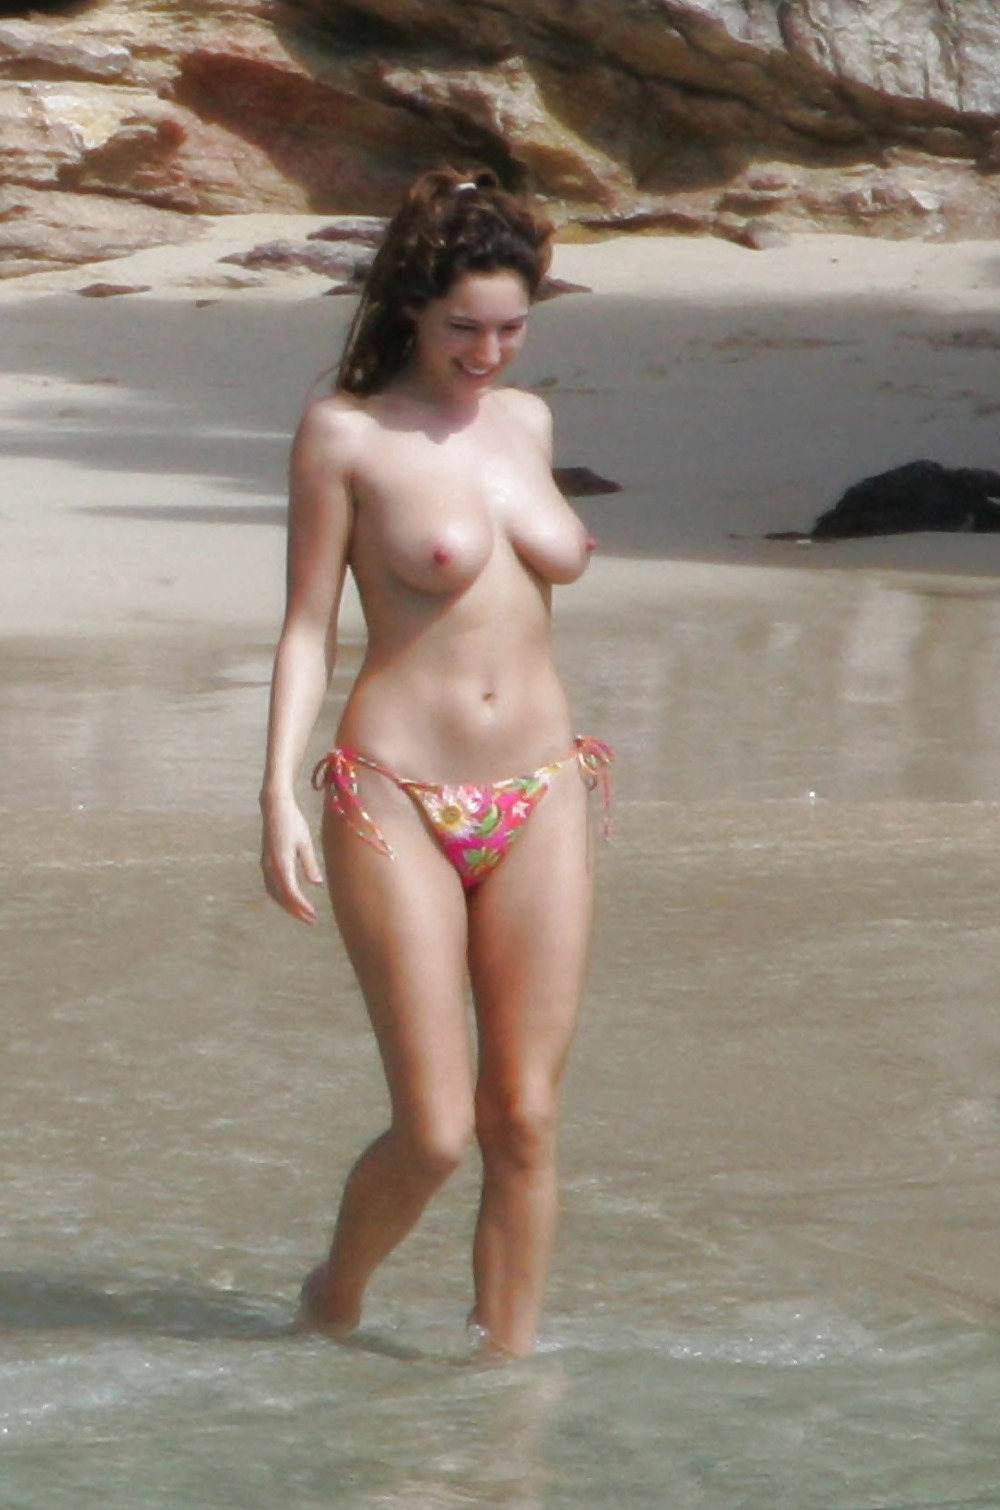 xry-kelly-brook-big-boobs-videos-naked-mexican